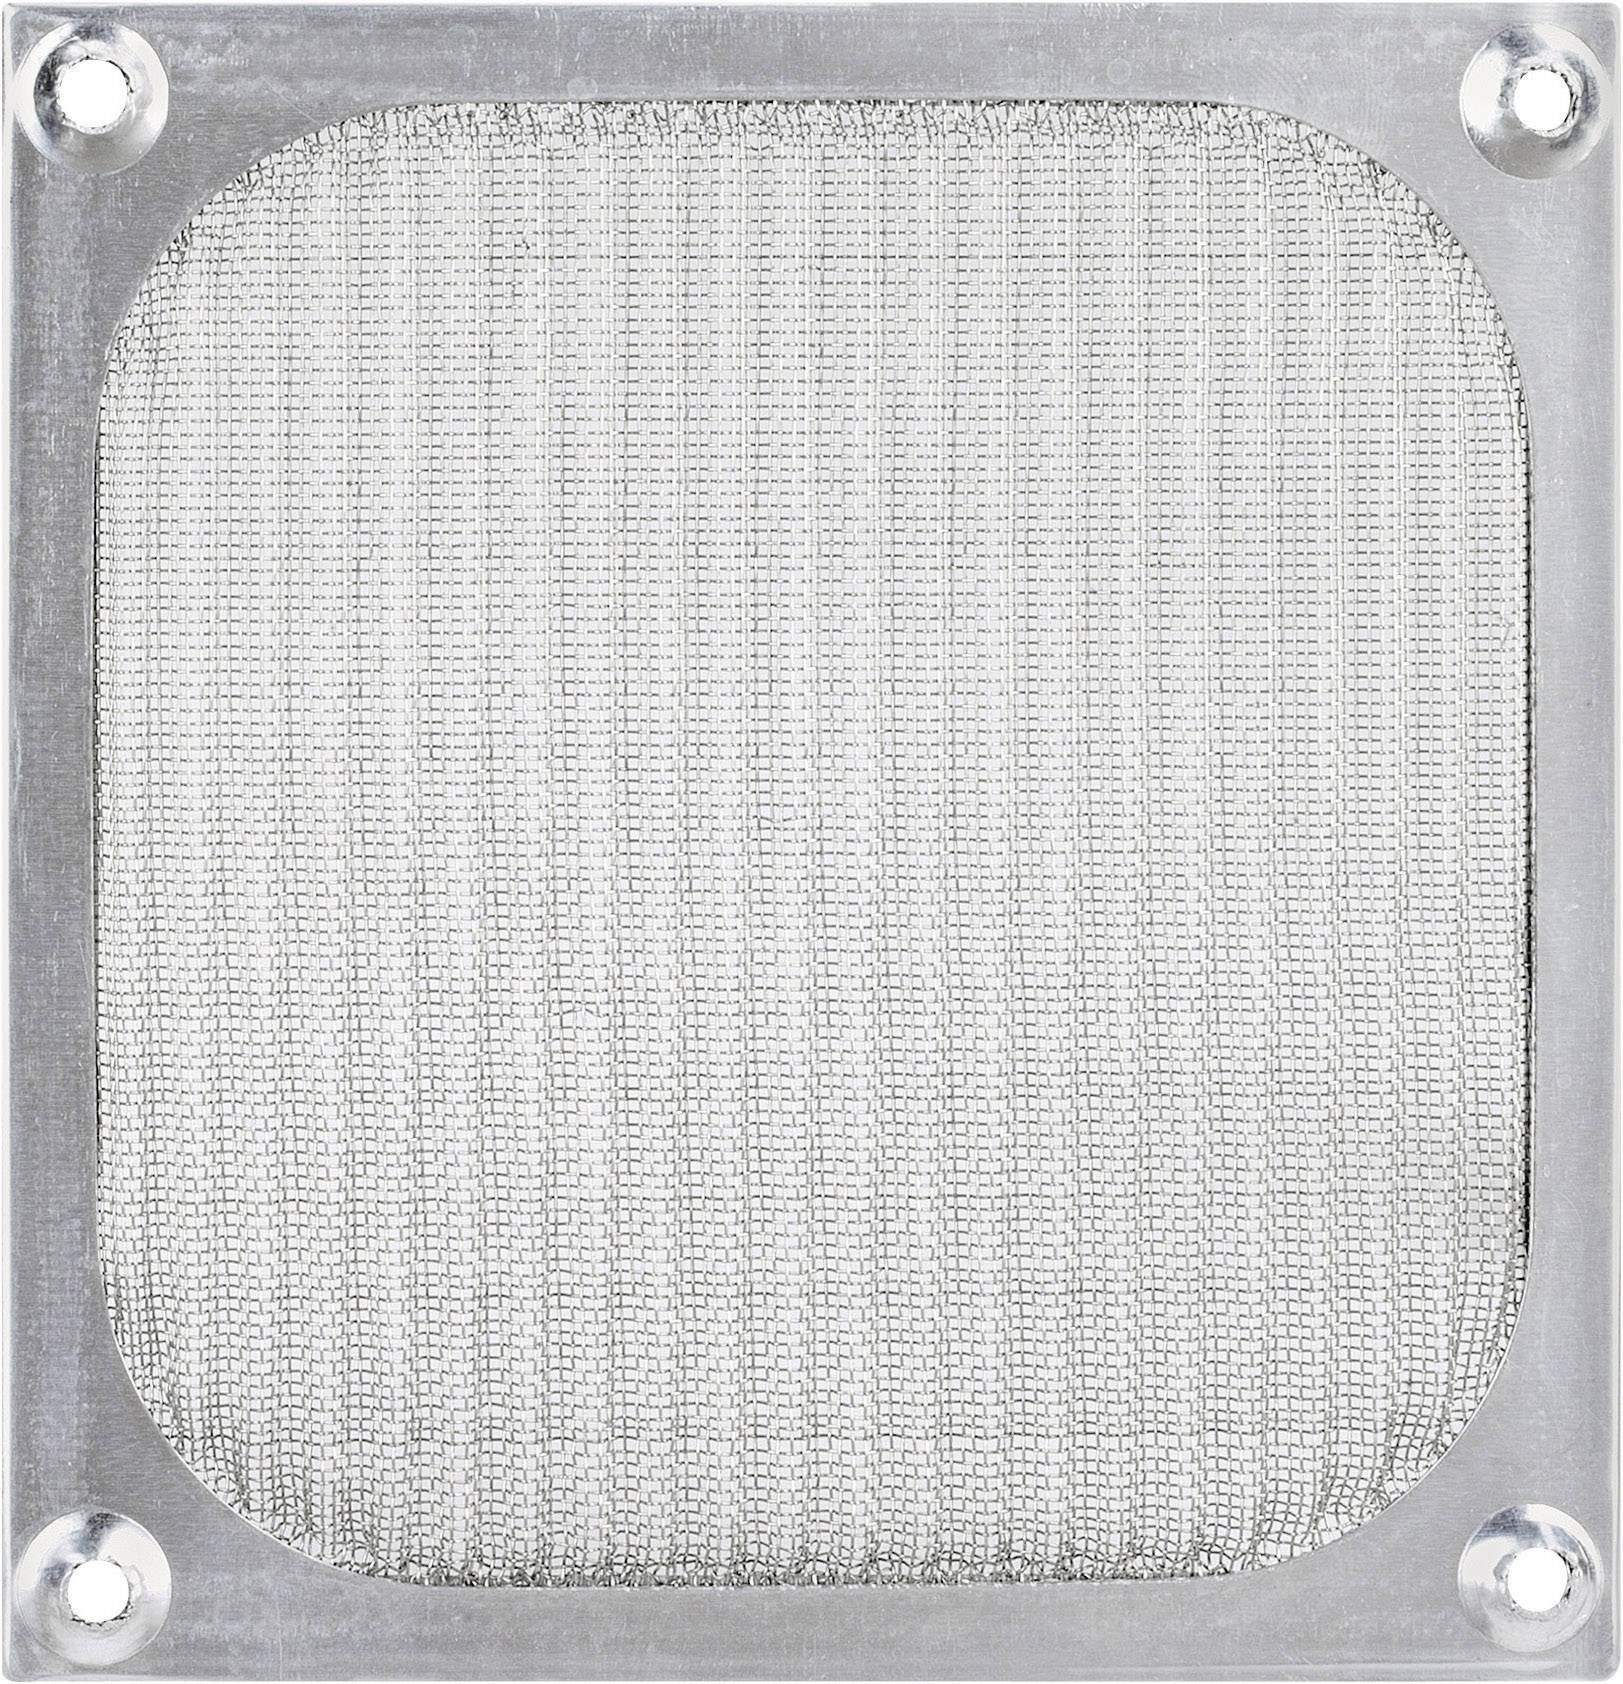 PC fan grille with filter Renkforce 28870C3/KM120 120 x 120 mm